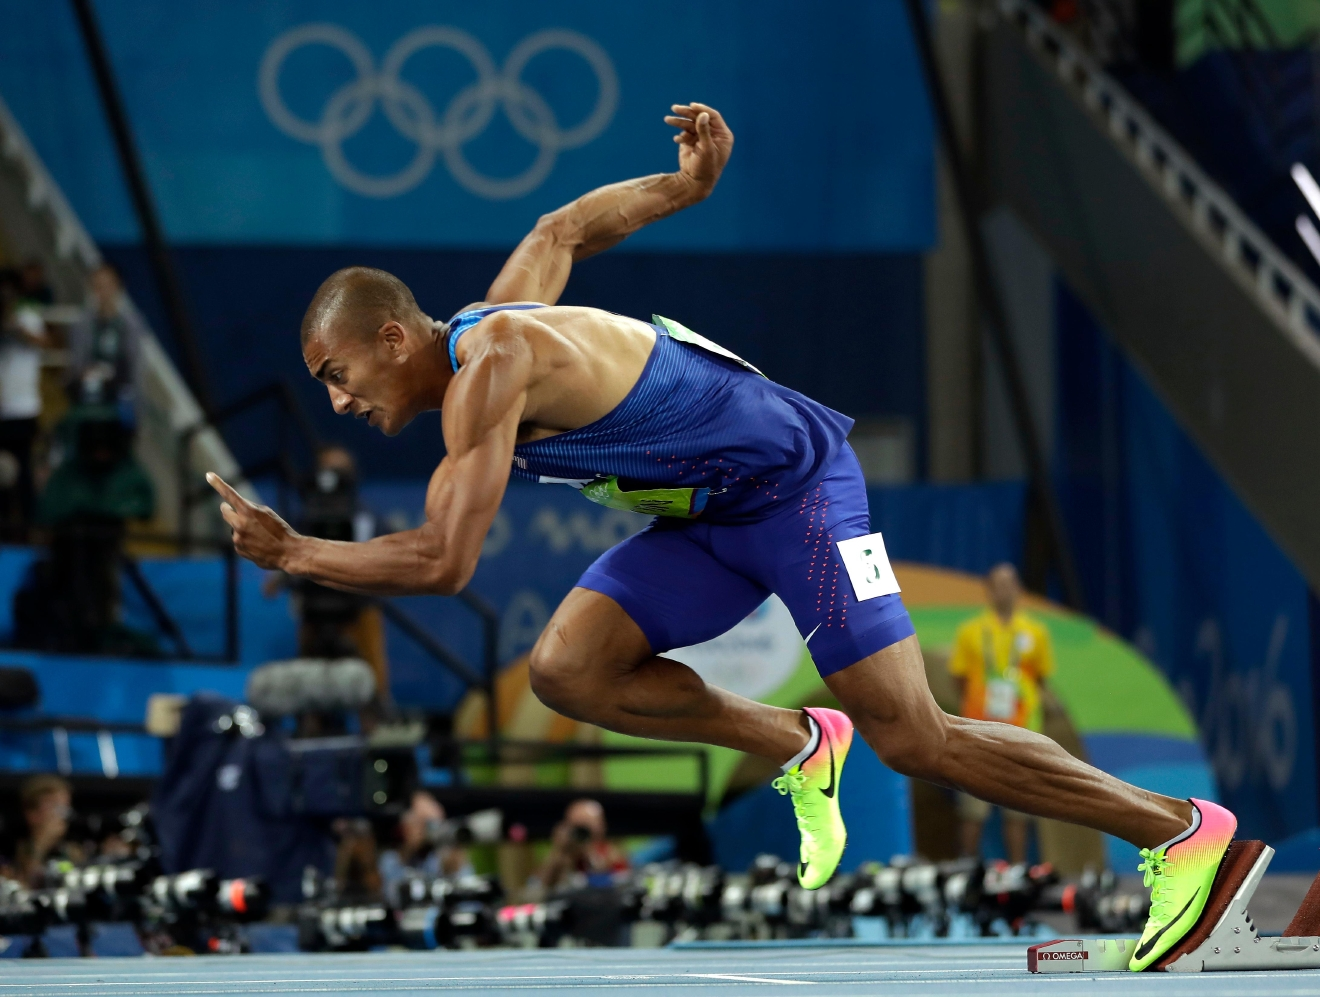 United States' Ashton Eaton starts a 400-meter heat of the decathlon during the athletics competitions of the 2016 Summer Olympics at the Olympic stadium in Rio de Janeiro, Brazil, Wednesday, Aug. 17, 2016. (AP Photo/Matt Slocum)